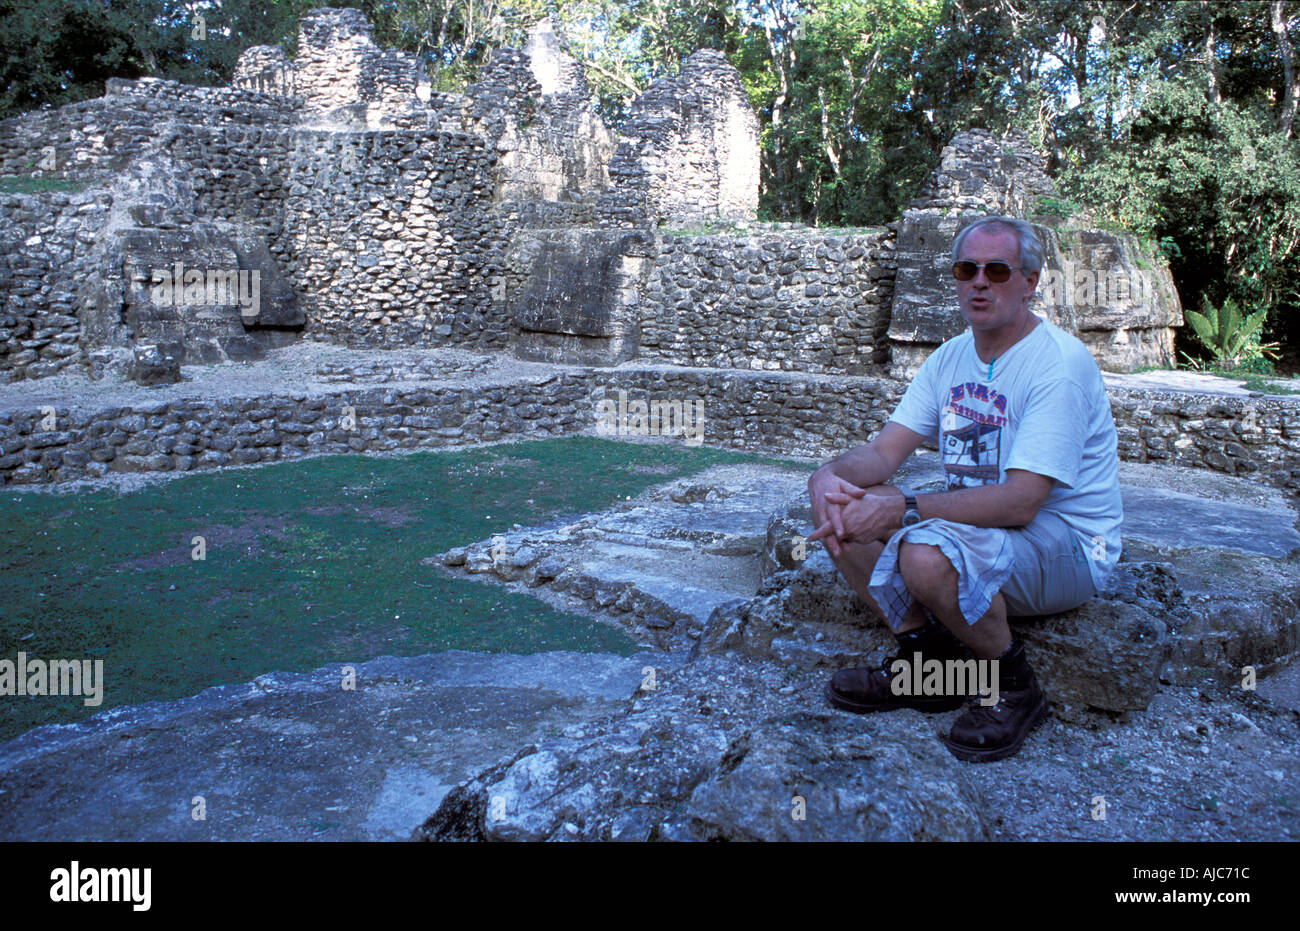 The ancient Maya site of Uaxactun north of Tikal El Peten Guatemala Bestselling Rough Guide author Peter Eltringham - Stock Image